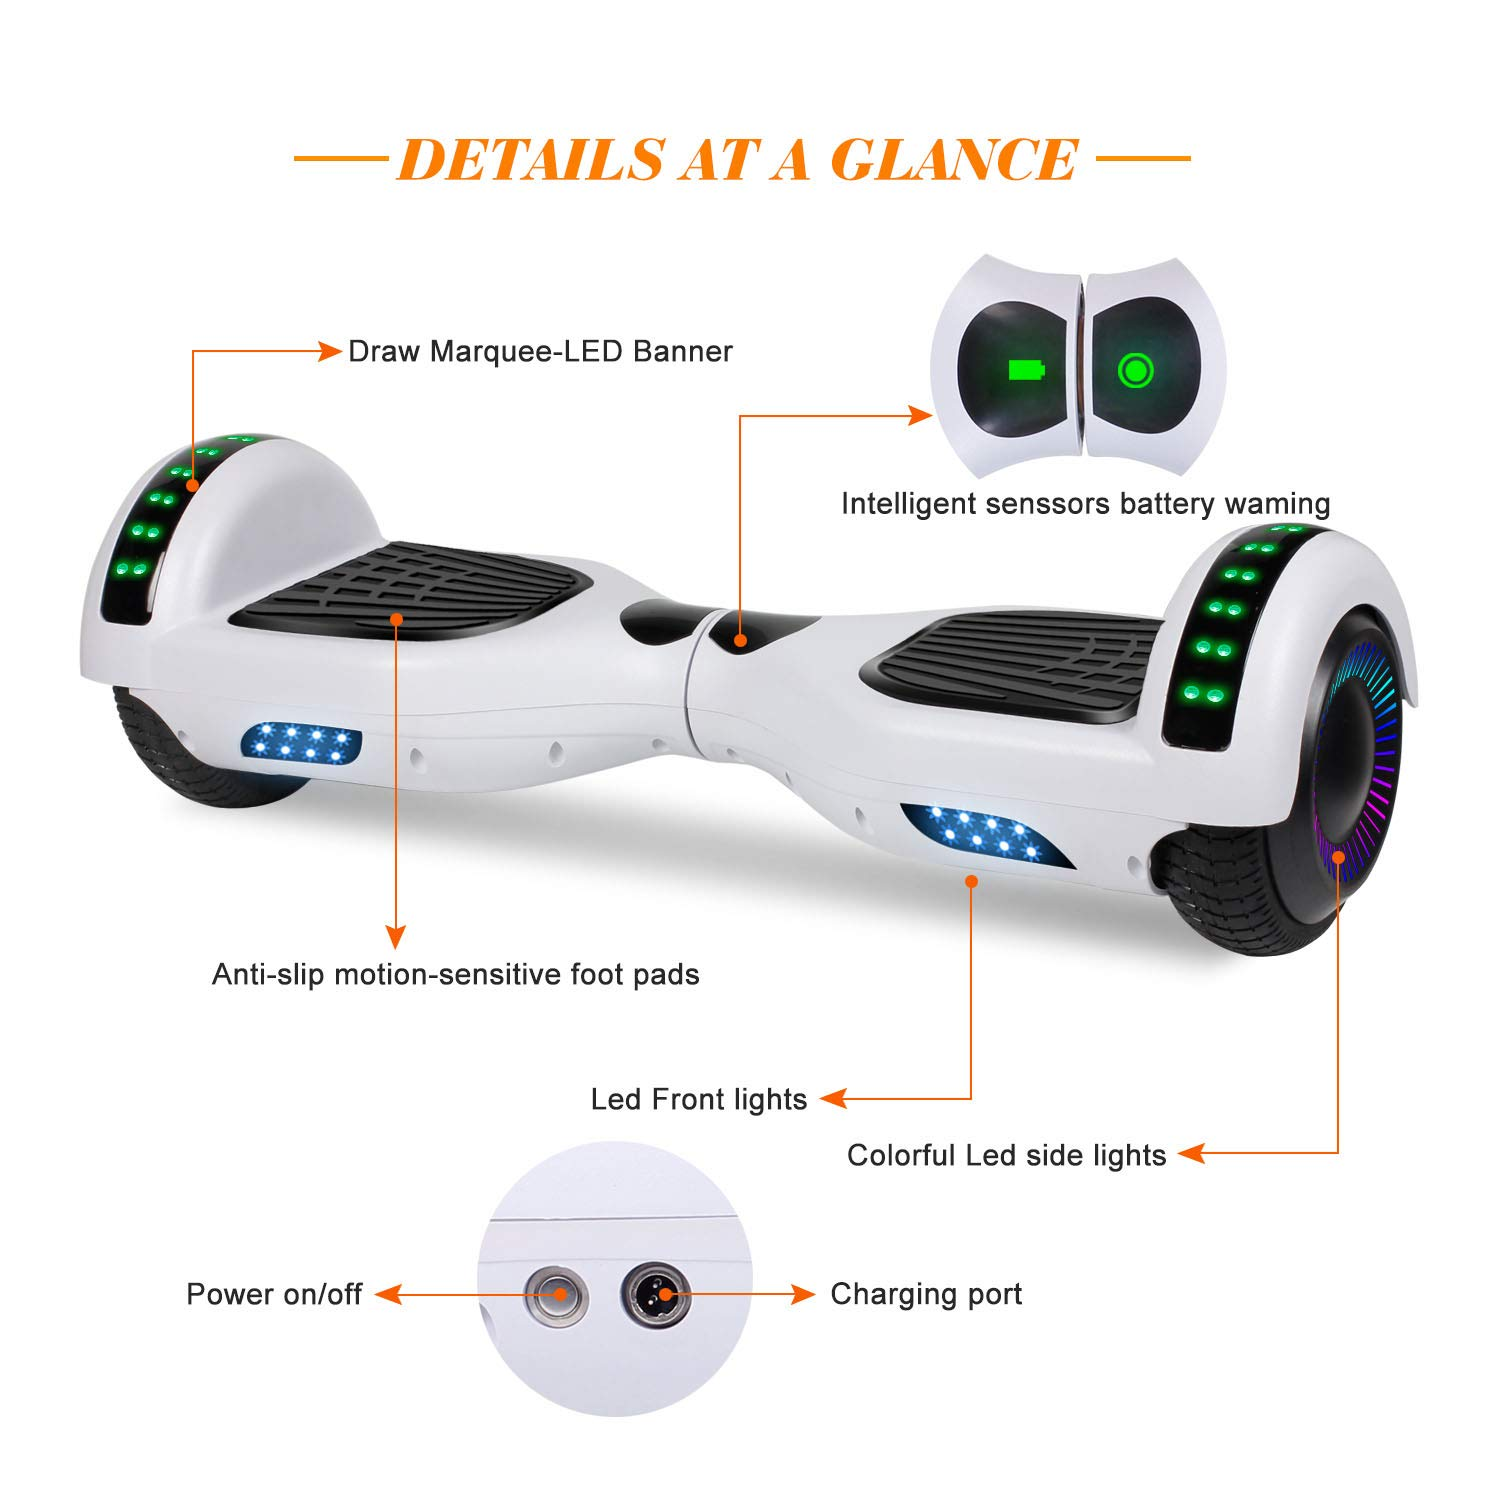 """SWEETBUY Hoverboard UL 2272 Certified 6.5"""" Two-Wheel Bluetooth Self Balancing Electric Scooter with LED Light Flash Lights Wheels White(Free Carry Bag) by SWEETBUY (Image #2)"""